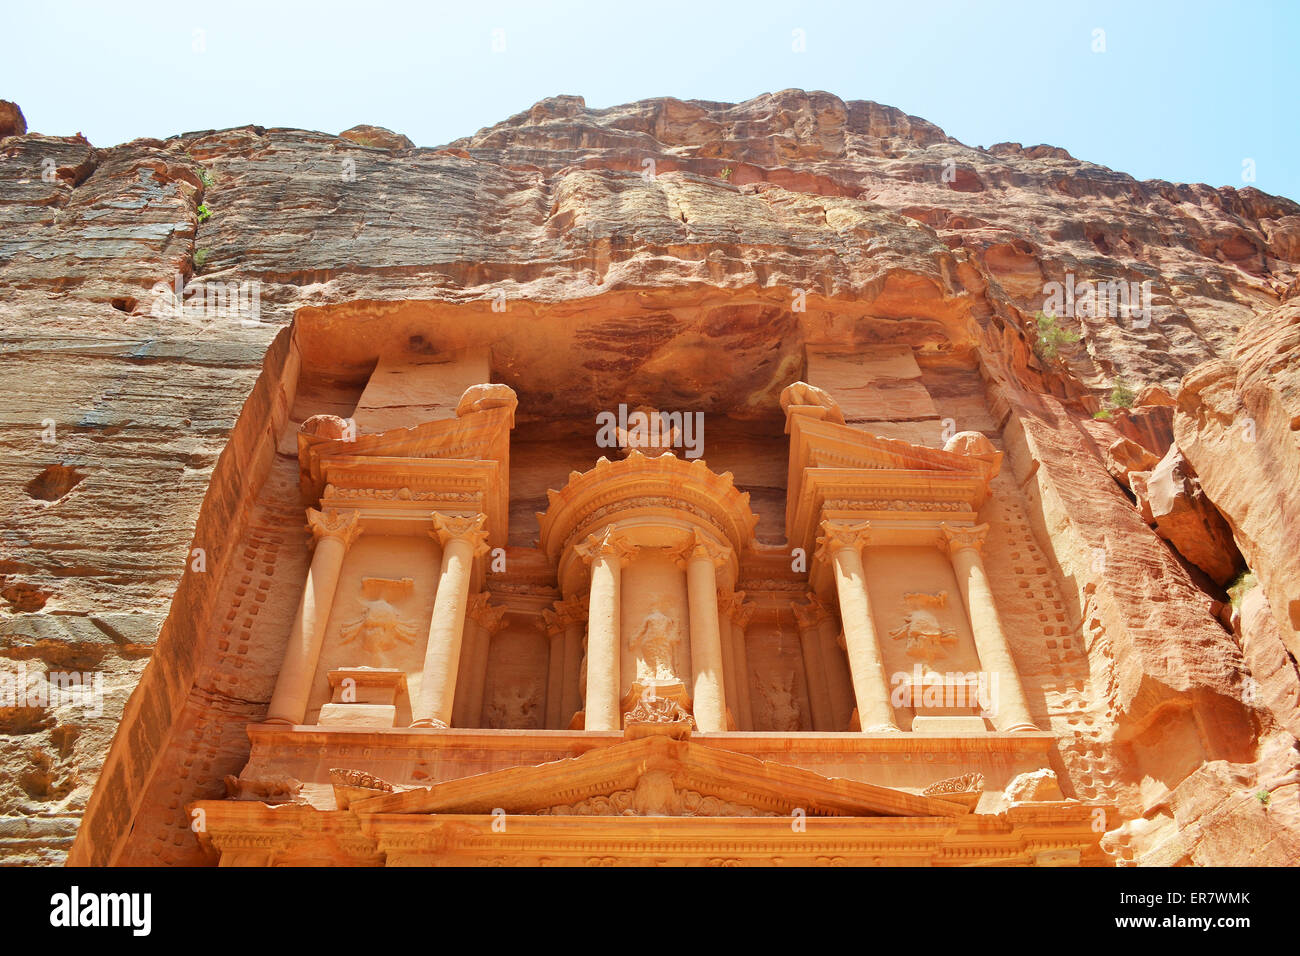 PETRA, JORDAN - MAY 19, 2015: Close up of the upper part of the treasury of the Nabataean ancient city of Petra, - Stock Image